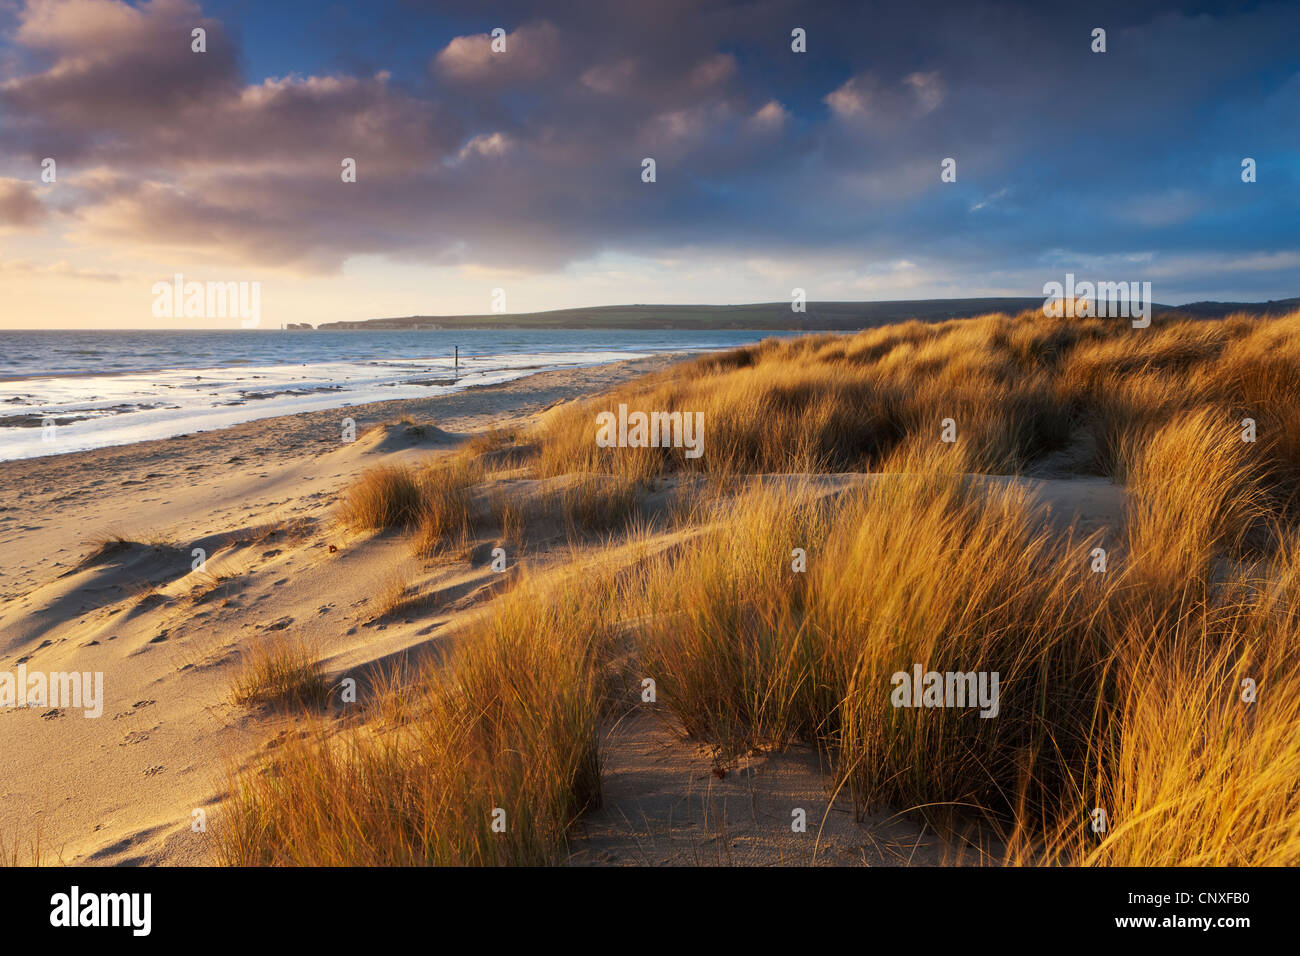 Windswept sand dunes on the beach at Studland Bay, with views towards Old Harry Rocks, Dorset, England. Winter (February) - Stock Image